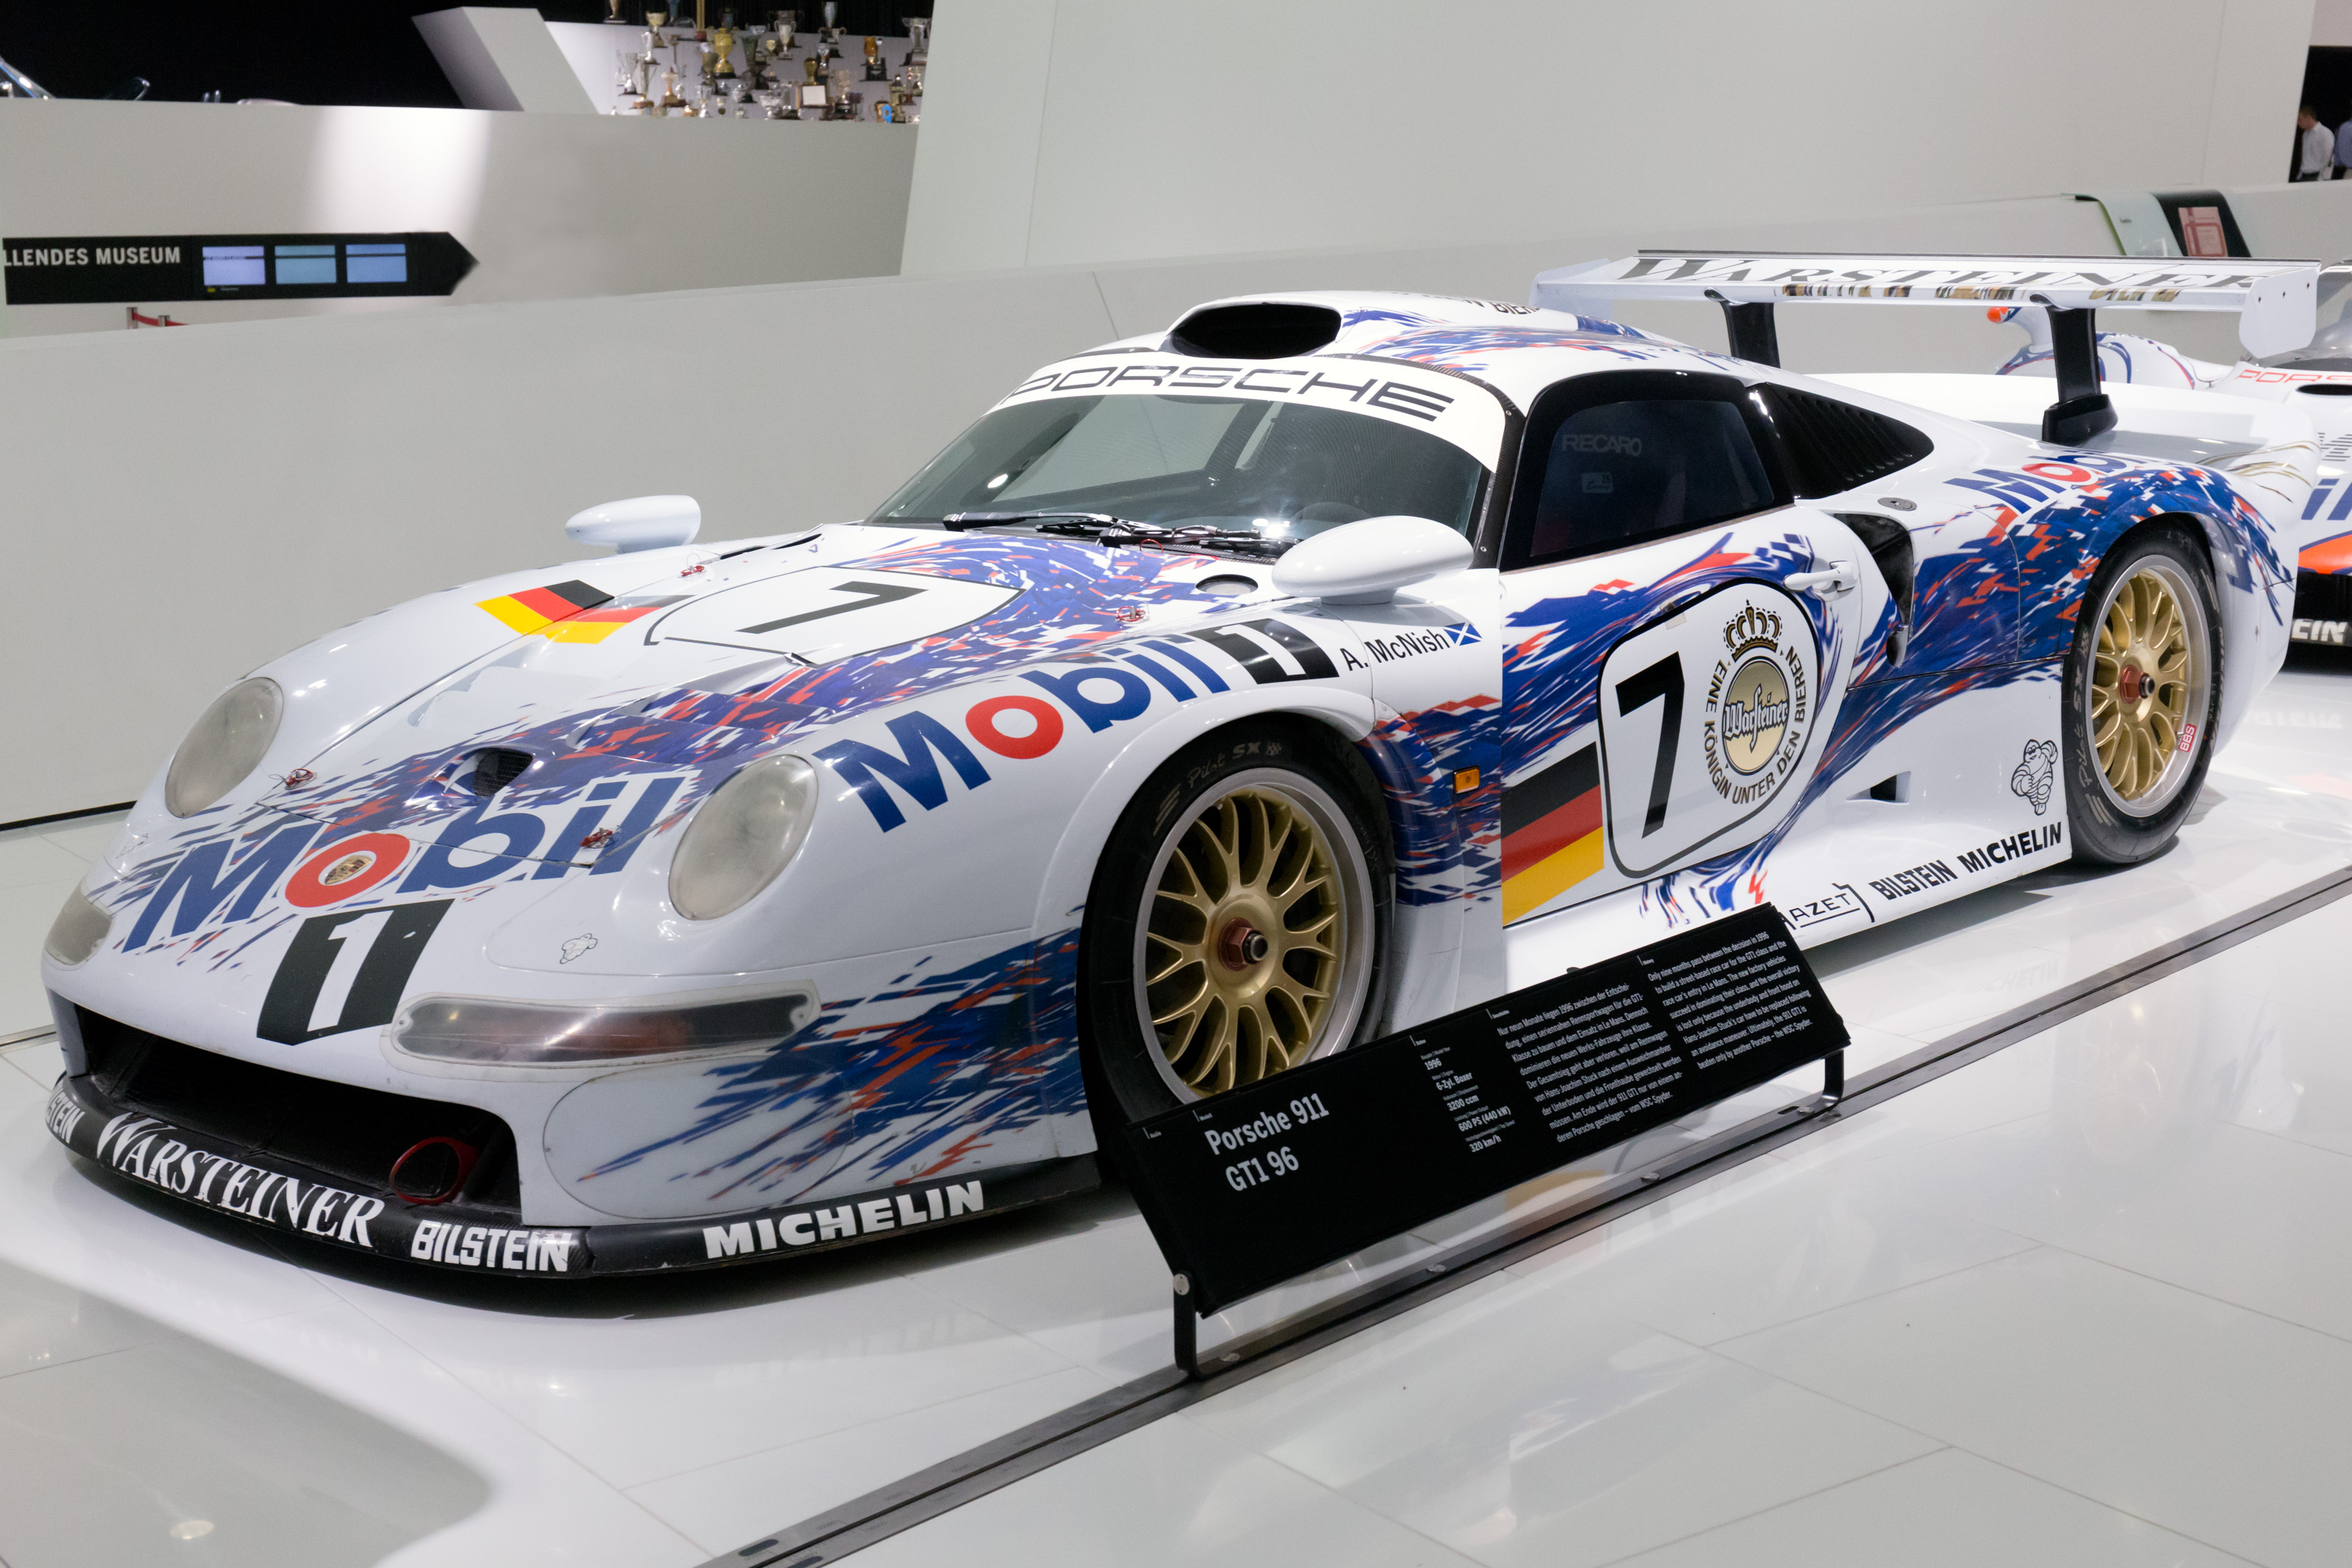 file porsche 911 gt1 96 front left porsche wikimedia commons. Black Bedroom Furniture Sets. Home Design Ideas